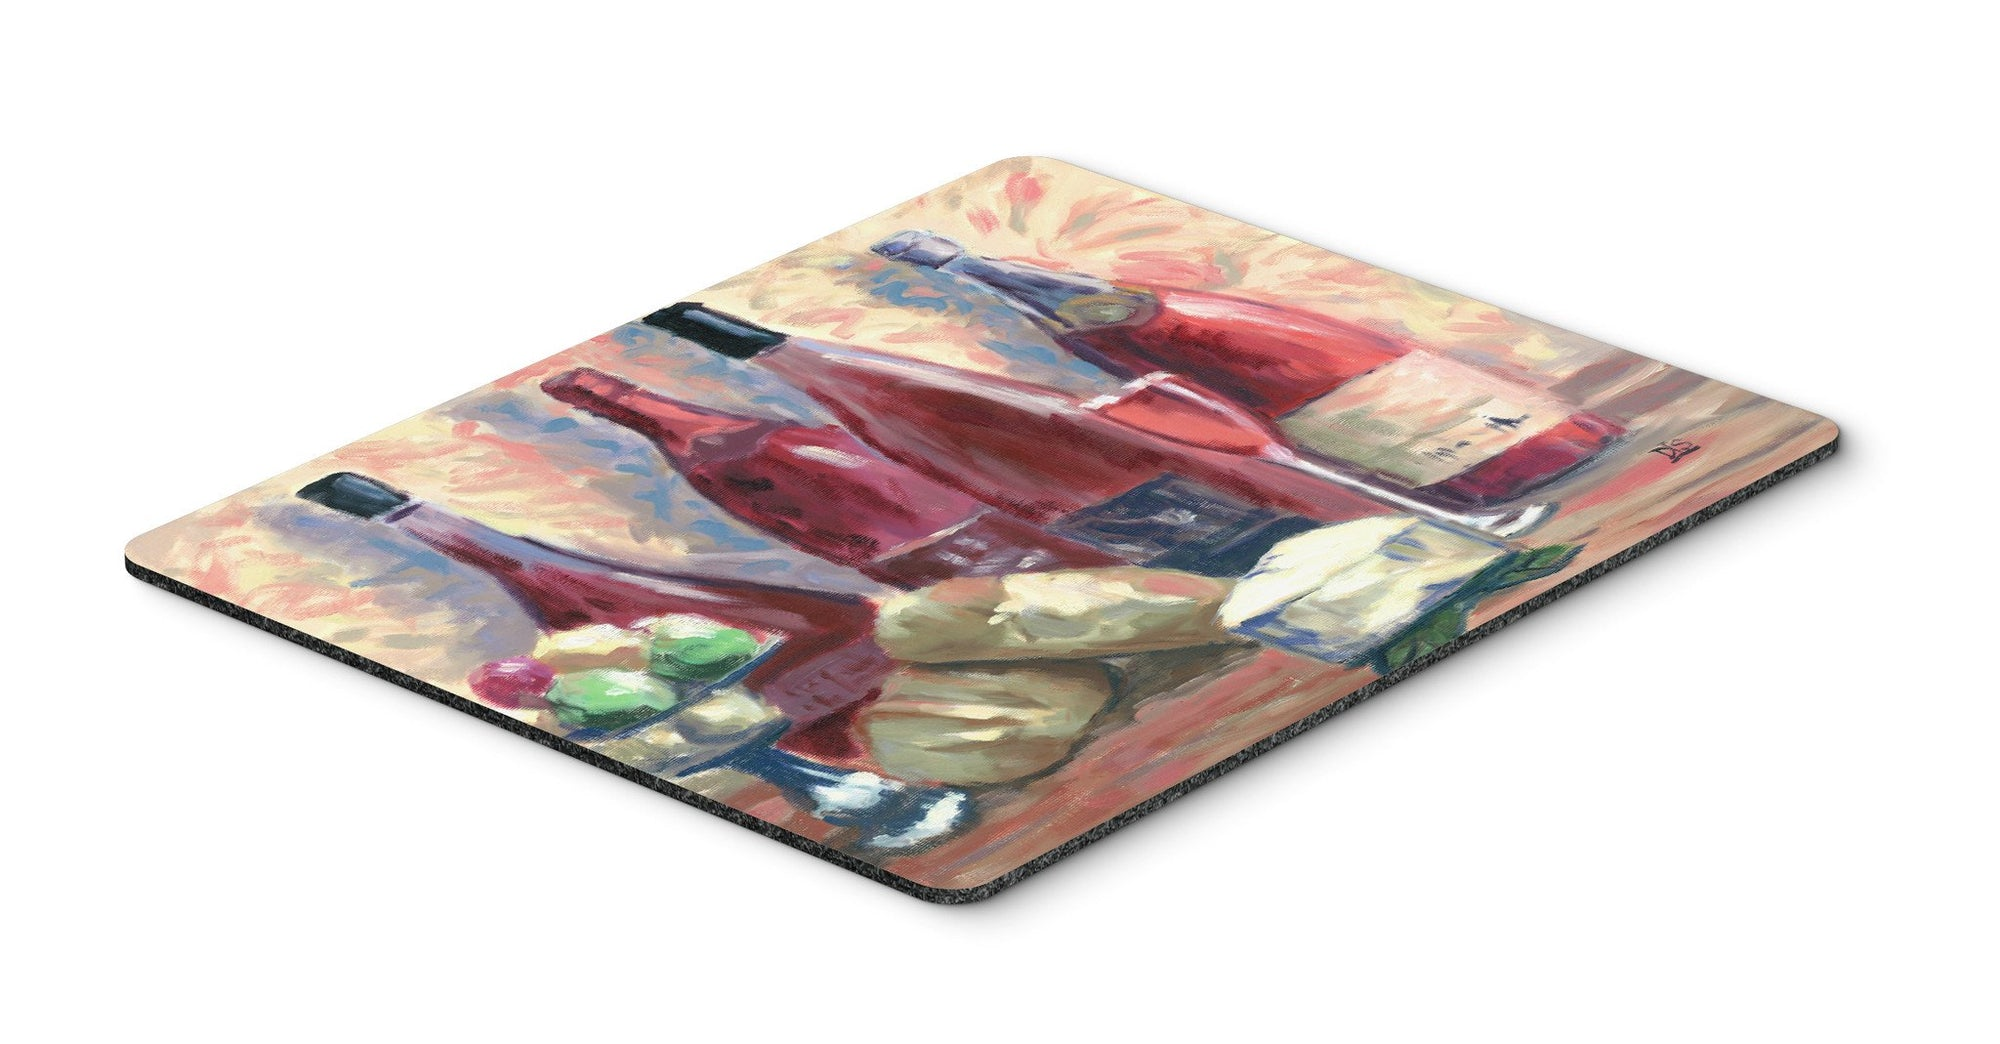 Buy this Wine and Cheese by David Smith Mouse Pad, Hot Pad or Trivet SDSM0127MP